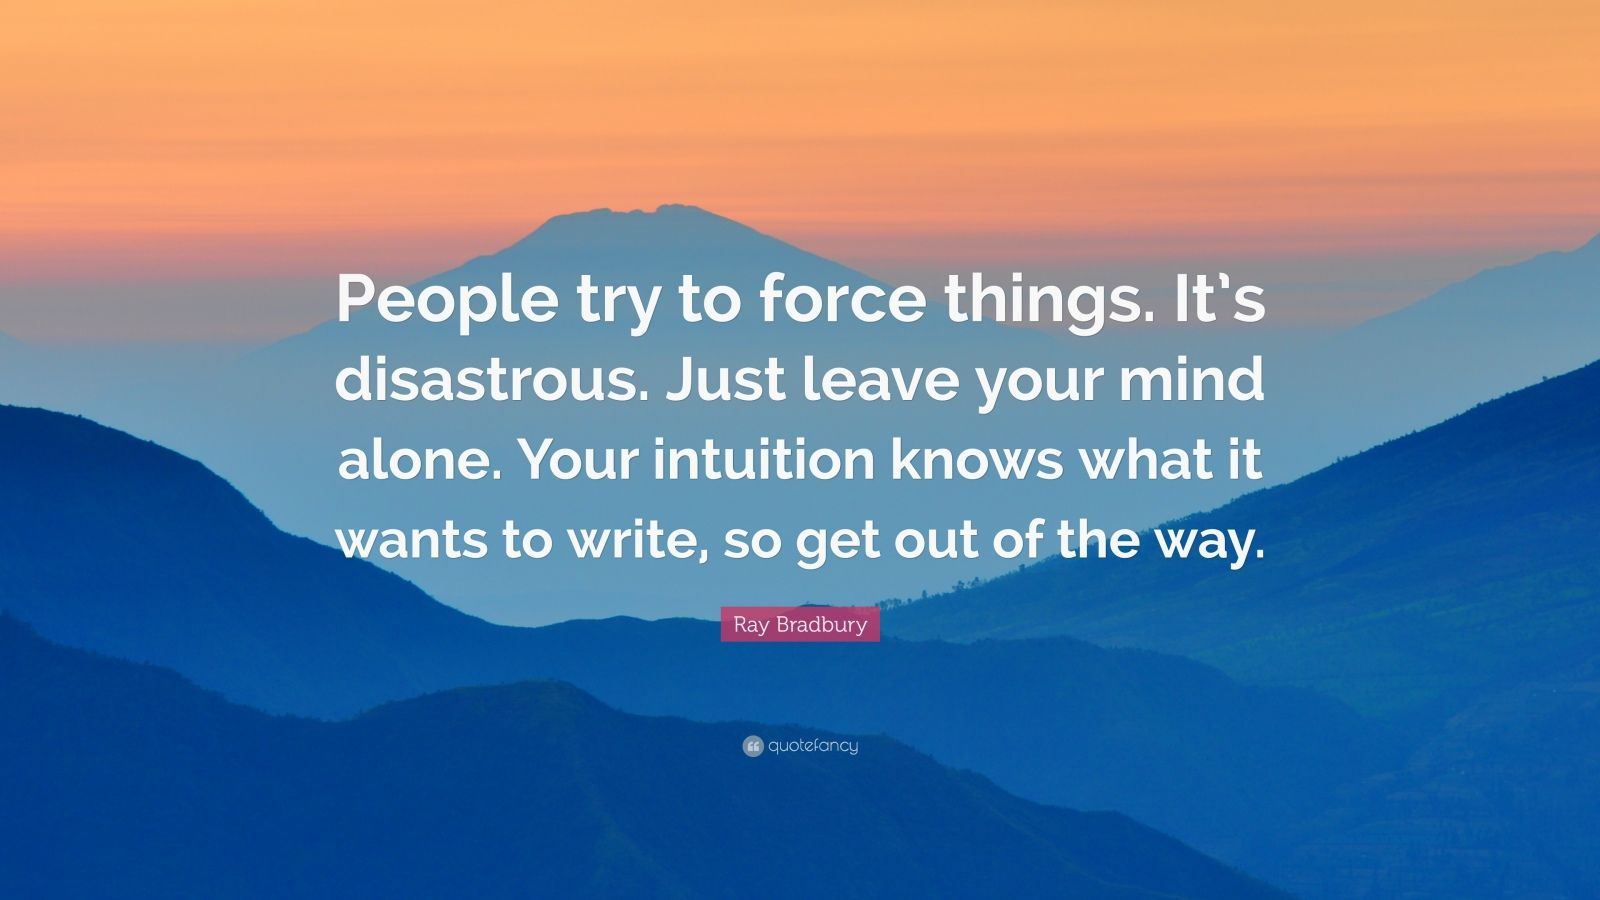 """Ray Bradbury Quote: """"People try to force things. It's disastrous. Just leave your mind alone. Your intuition knows what it wants to write, so get out of the way."""""""